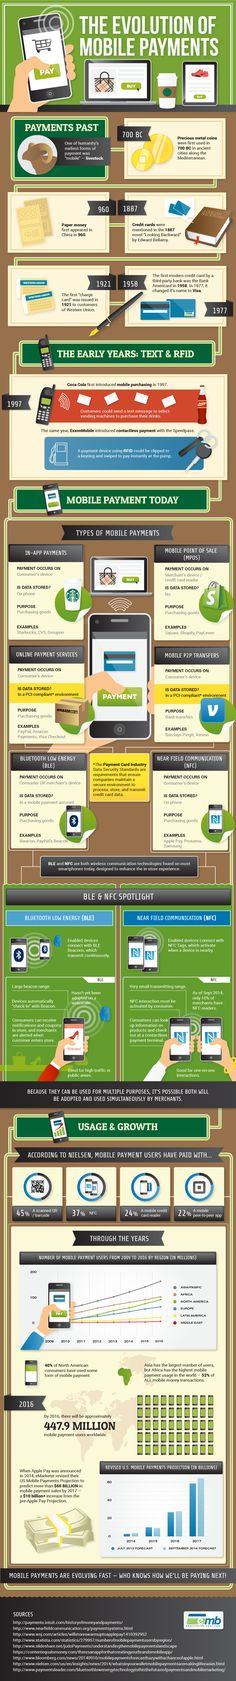 The history of the mobile payment experience.